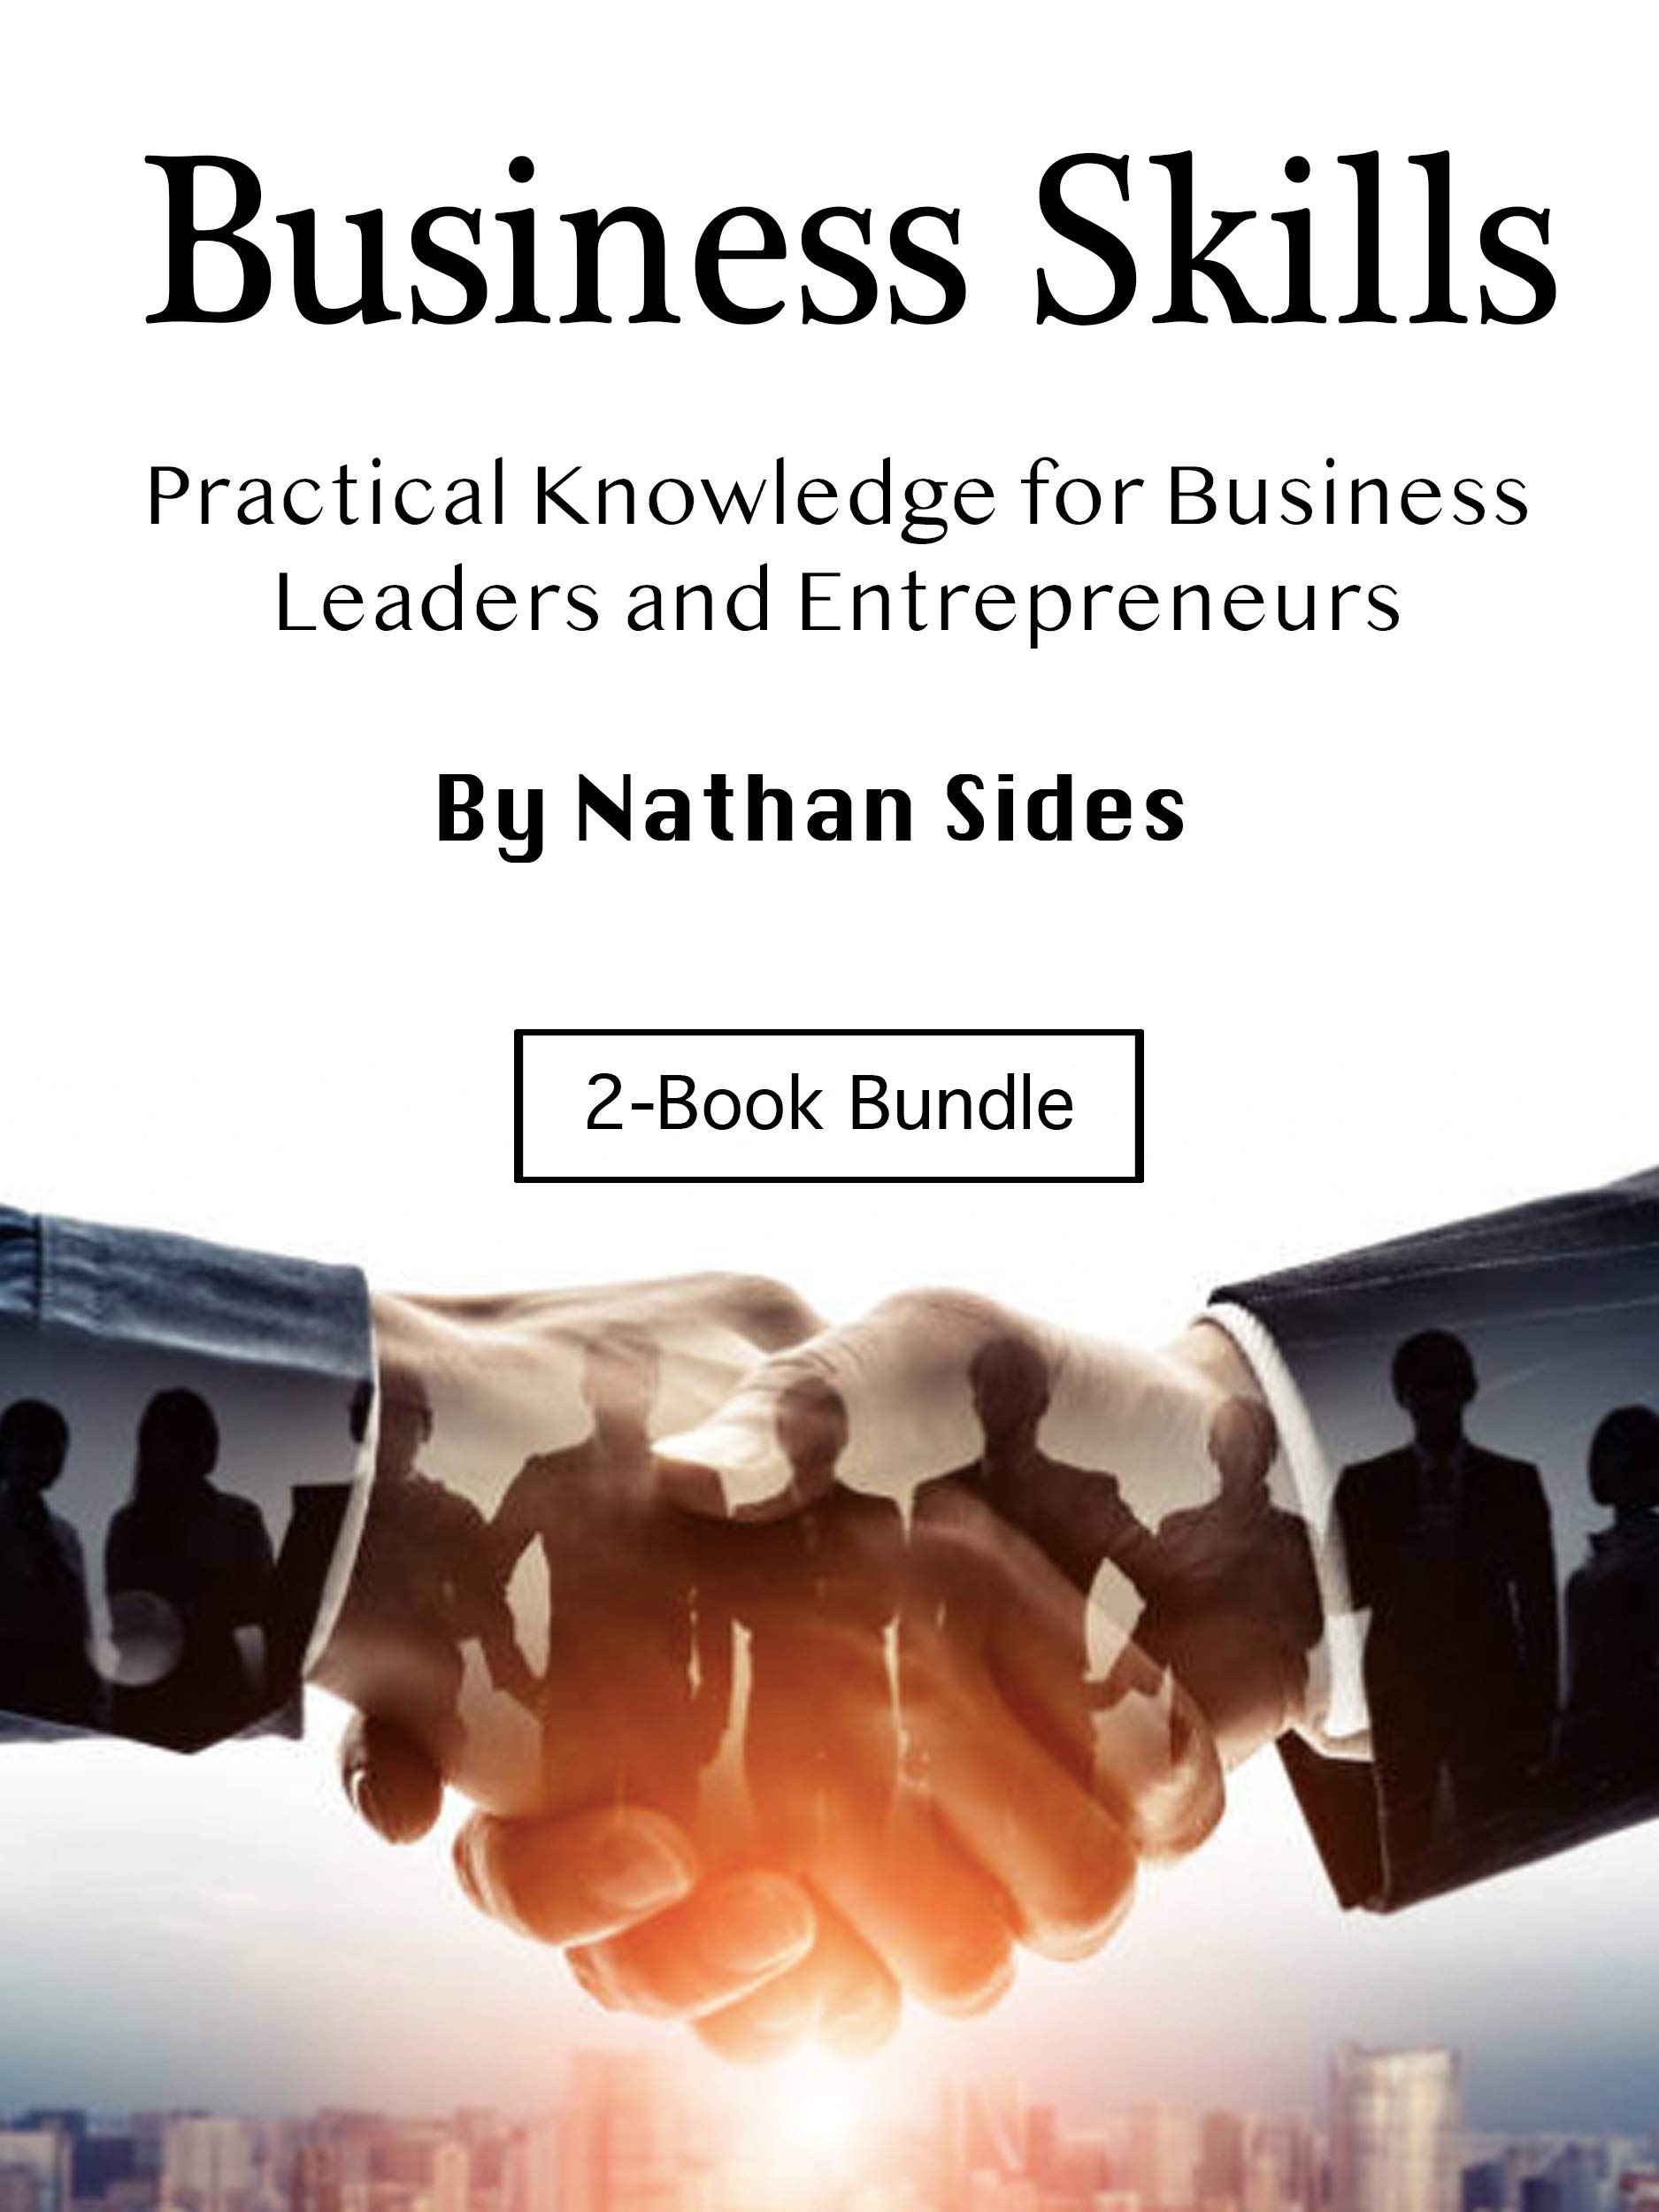 Business Skills: Practical Knowledge for Business Leaders and Entrepreneurs